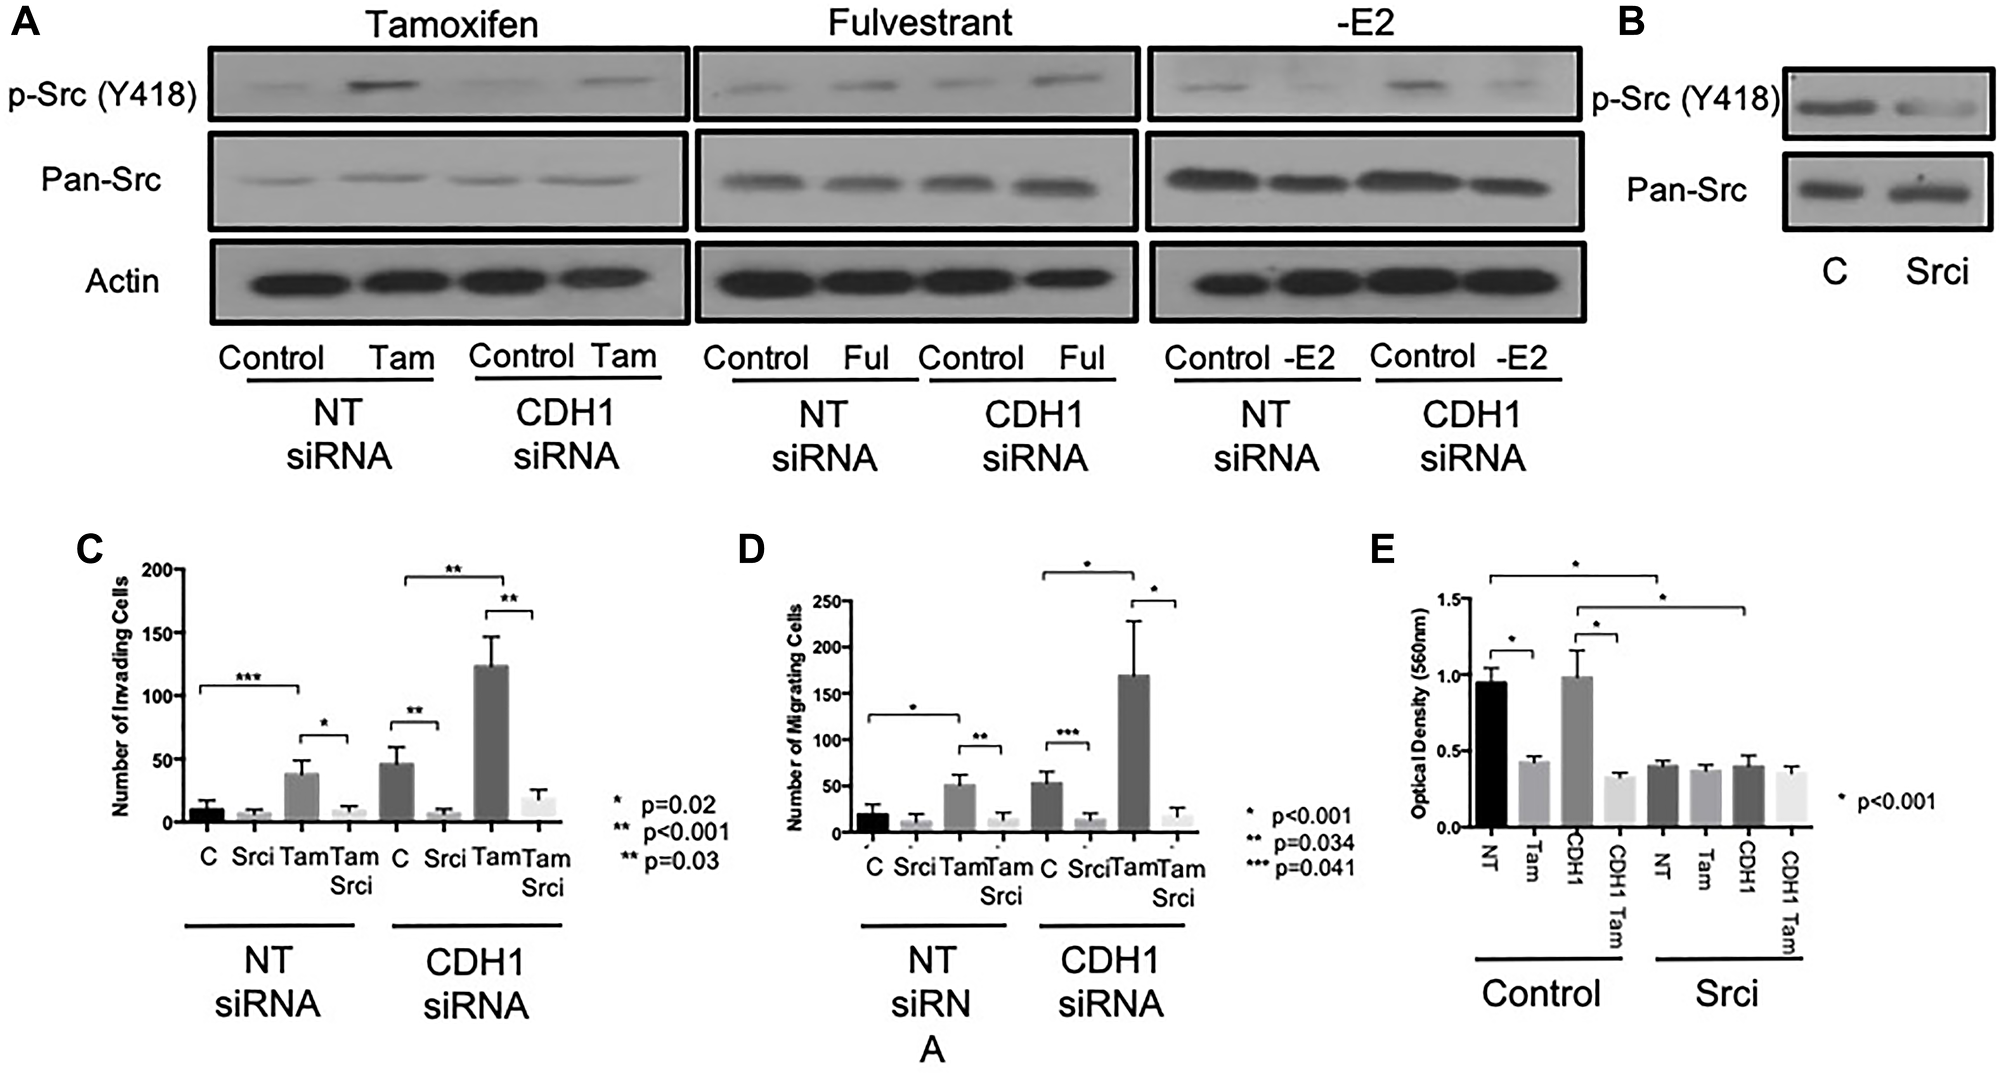 Tamoxifen and fulvestrant promote invasion of ER+ breast cancer cells through Src kinase.